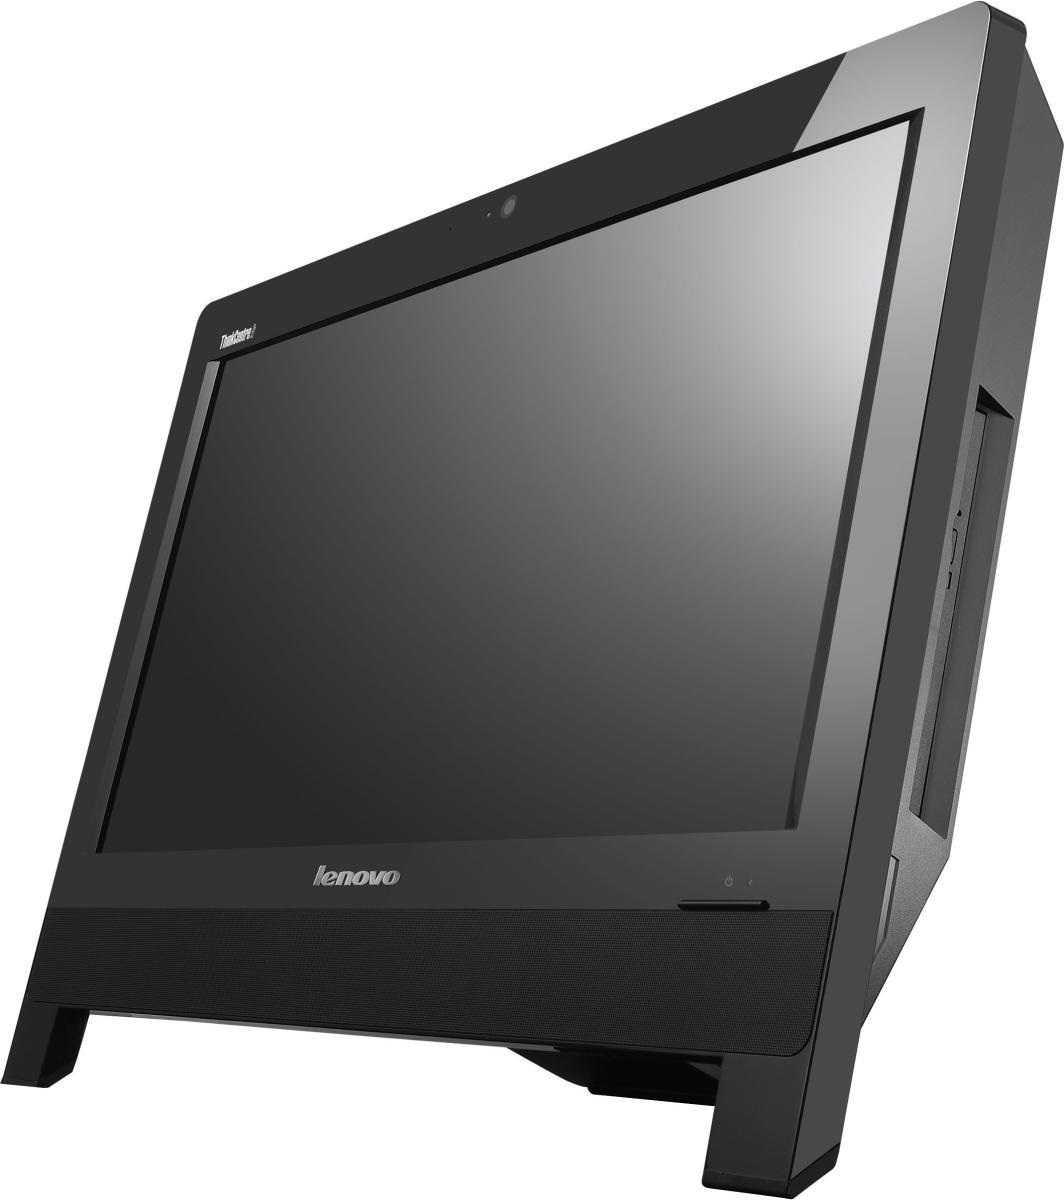 ПК Моноблок <br> Lenovo ThinkCentre Edge 62z AIO